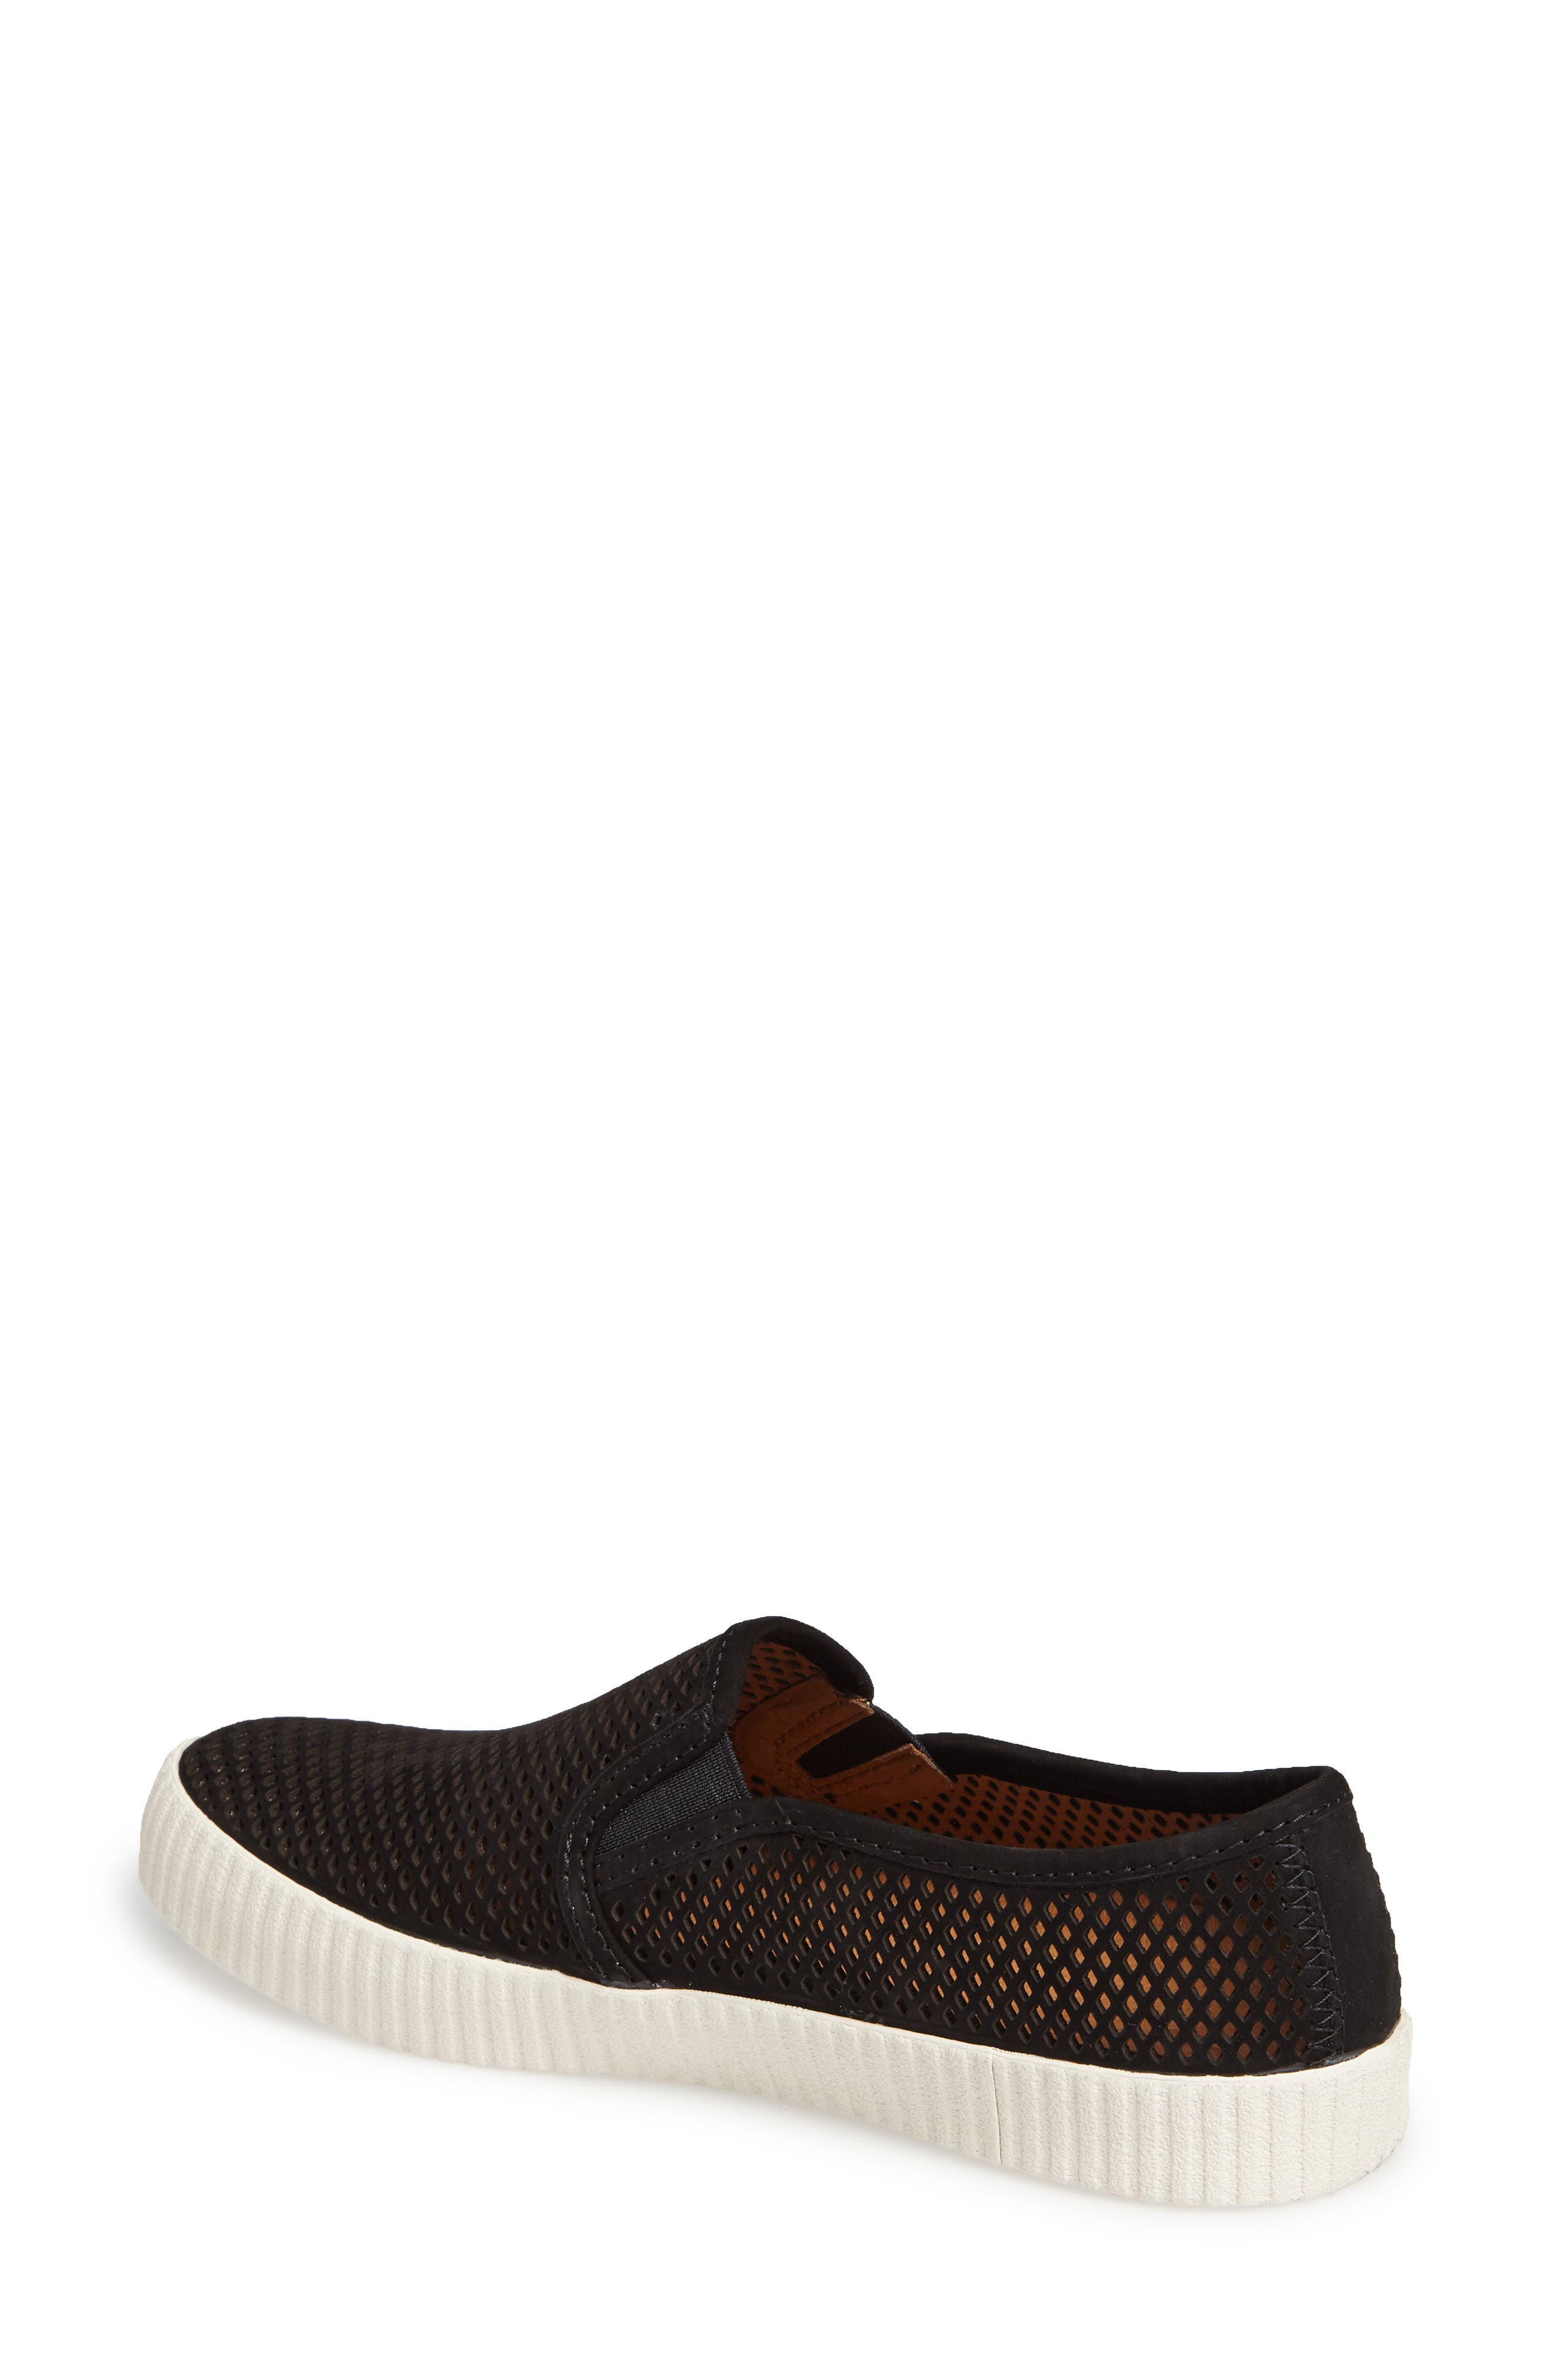 Camille Perforated Slip-On Sneaker,                             Alternate thumbnail 2, color,                             001